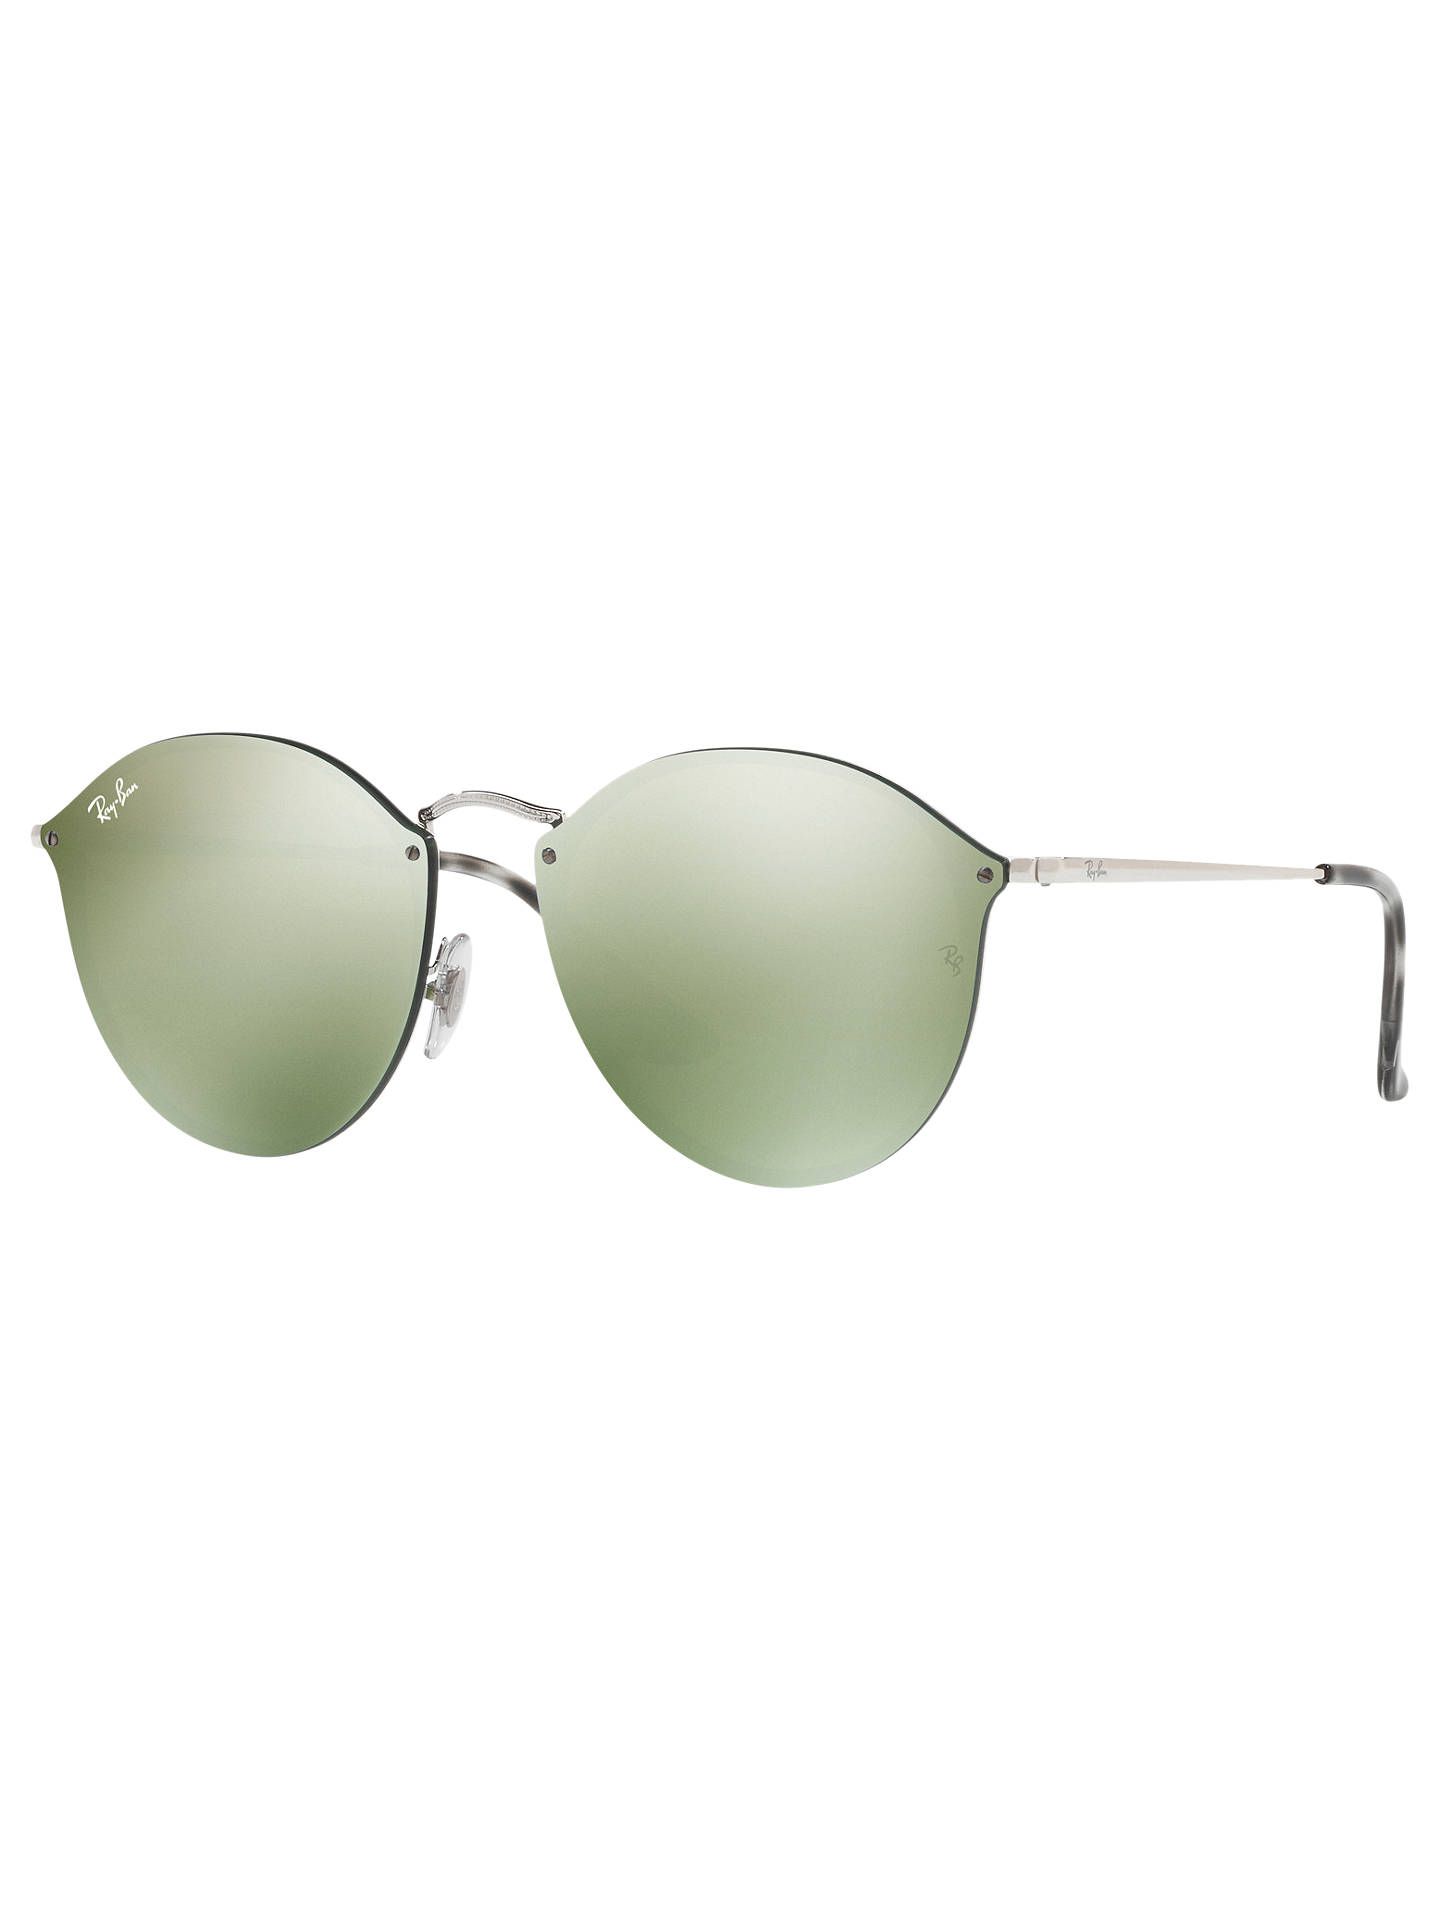 Buy Ray-Ban RB3574N Unisex Round Sunglasses, Silver/Mirror Green Online at johnlewis.com